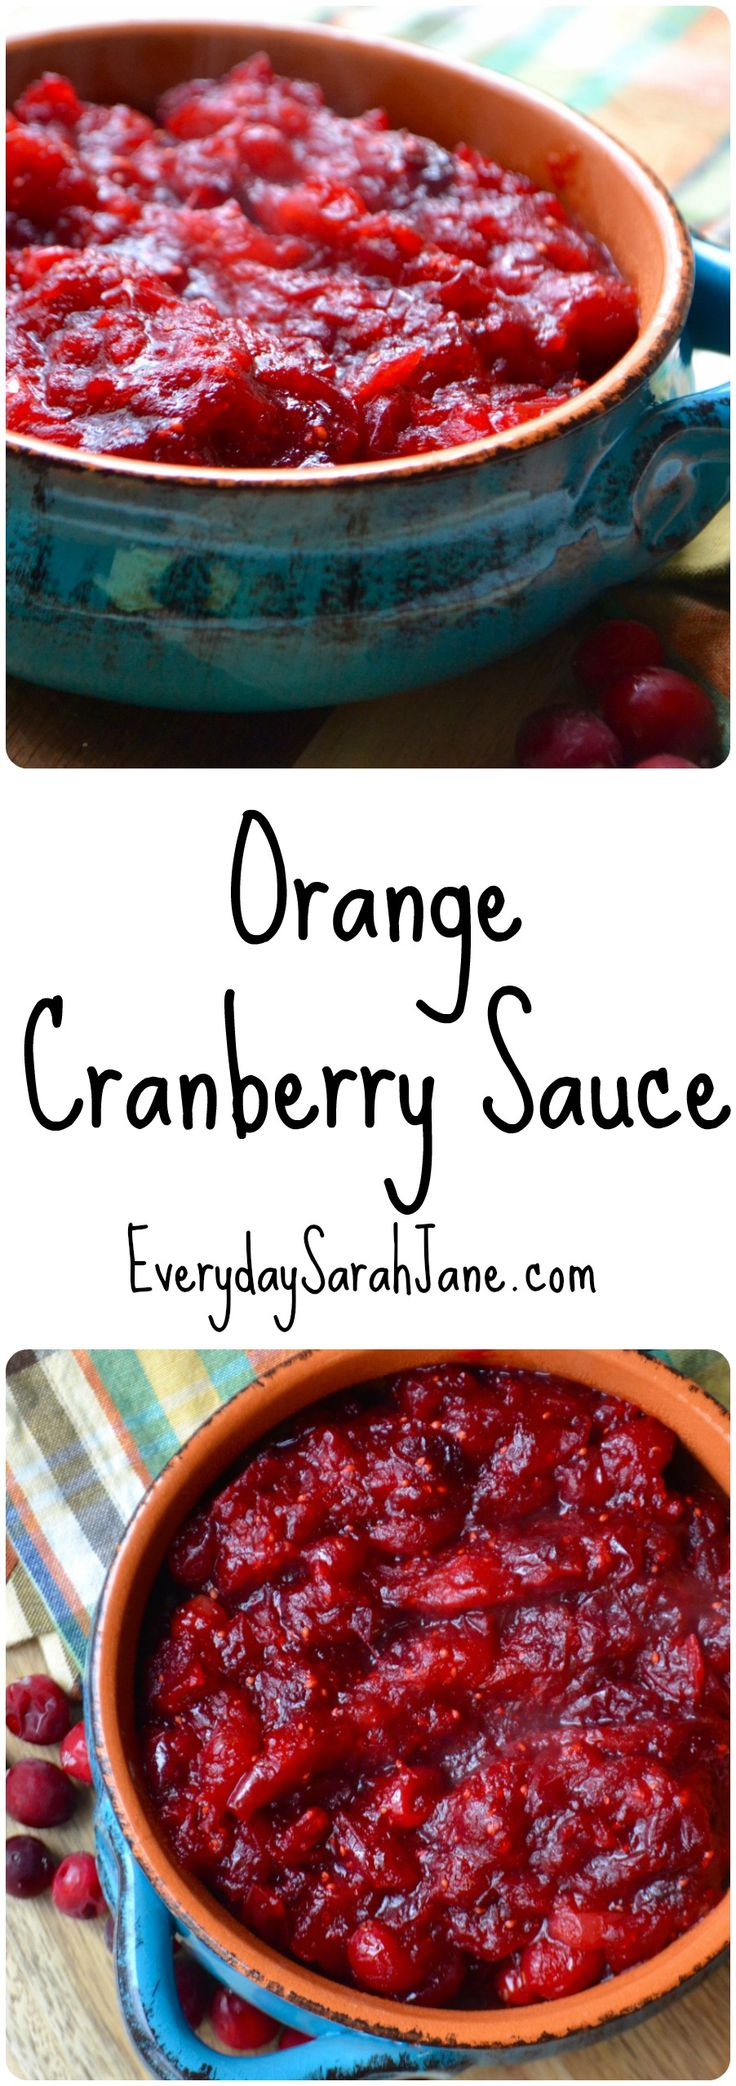 Easy & delicious homemade cranberry sauce!